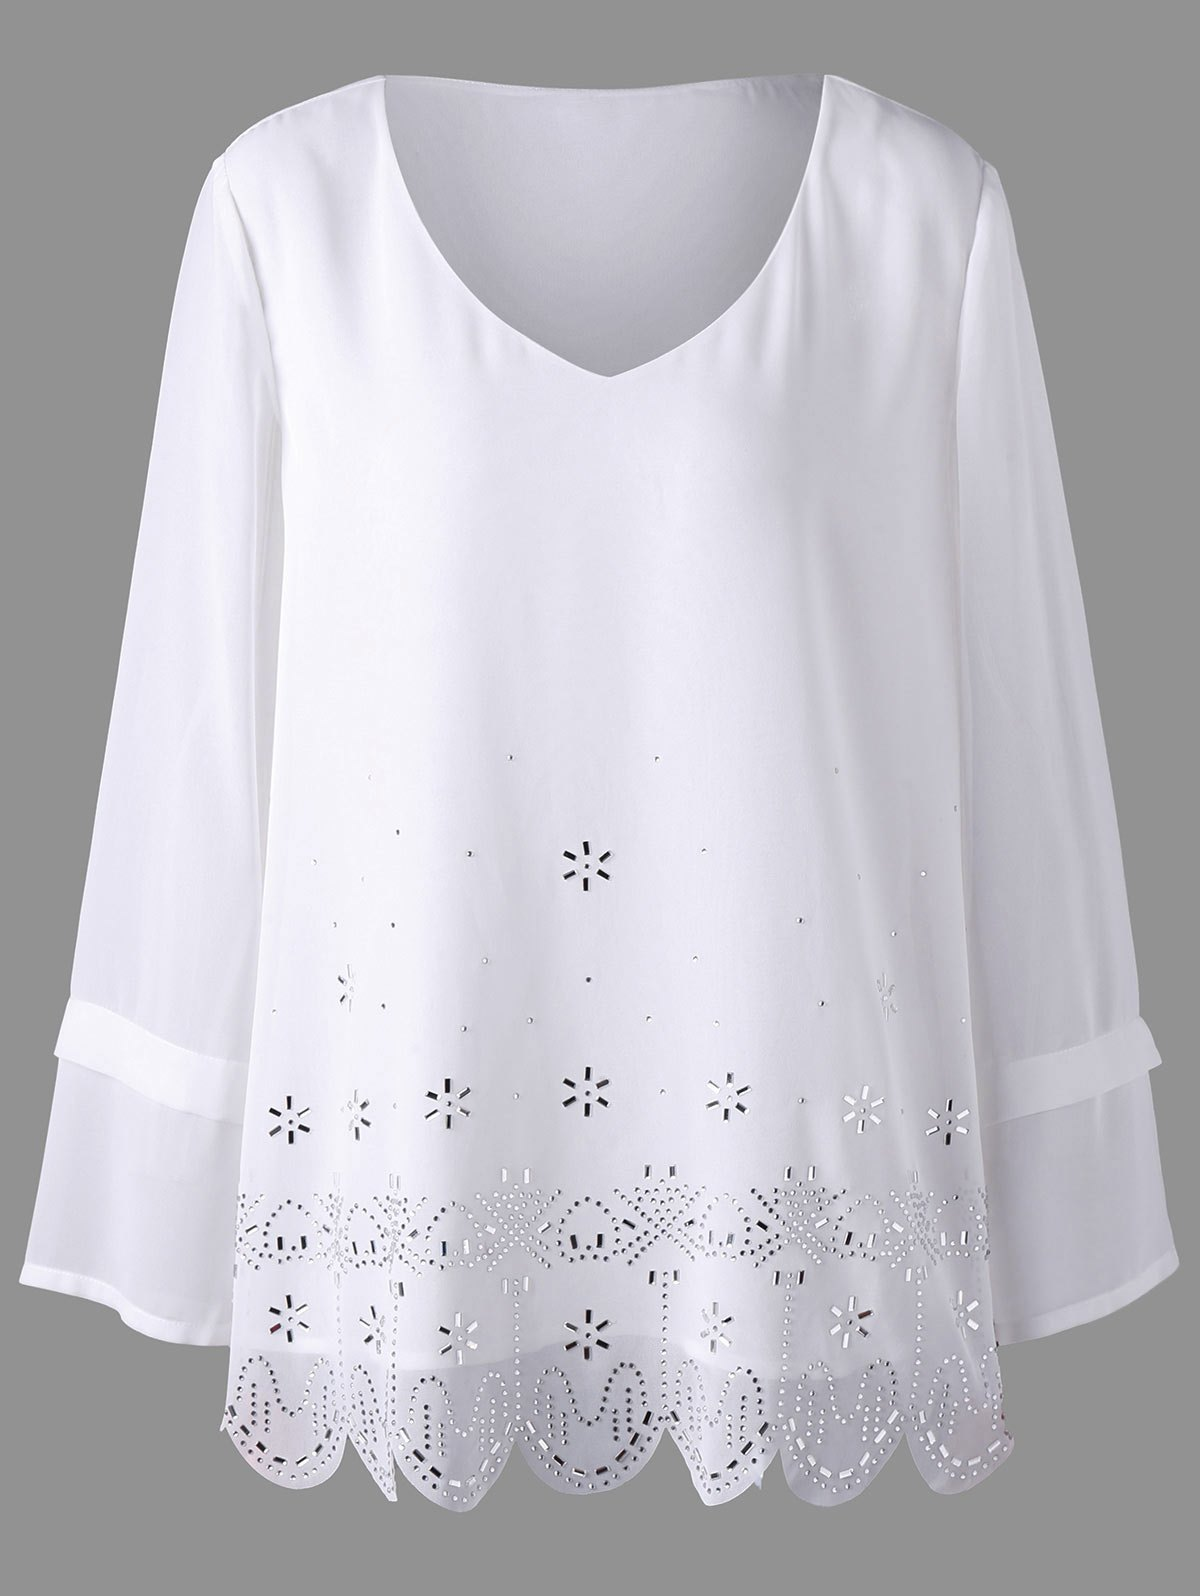 Plus Size Embellished V Neck Scalloped BlouseWOMEN<br><br>Size: 3XL; Color: WHITE; Material: Polyester; Shirt Length: Long; Sleeve Length: Full; Collar: V-Neck; Style: Casual; Season: Fall,Spring; Embellishment: Rhinestone; Pattern Type: Solid; Weight: 0.2700kg; Package Contents: 1 x Top;